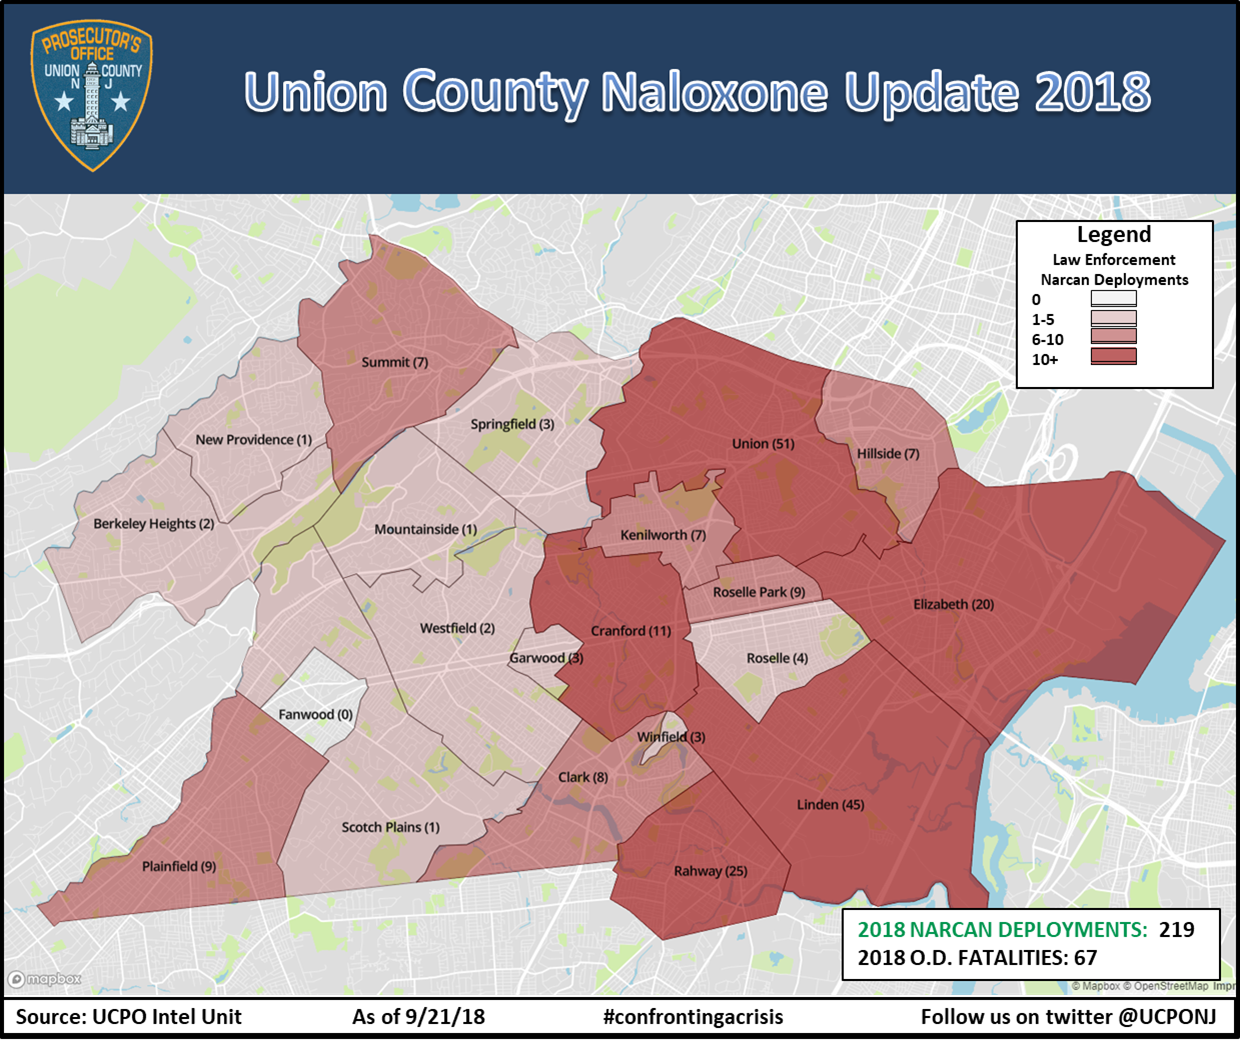 Union County Prosecutor's Office – County of Union, New Jersey